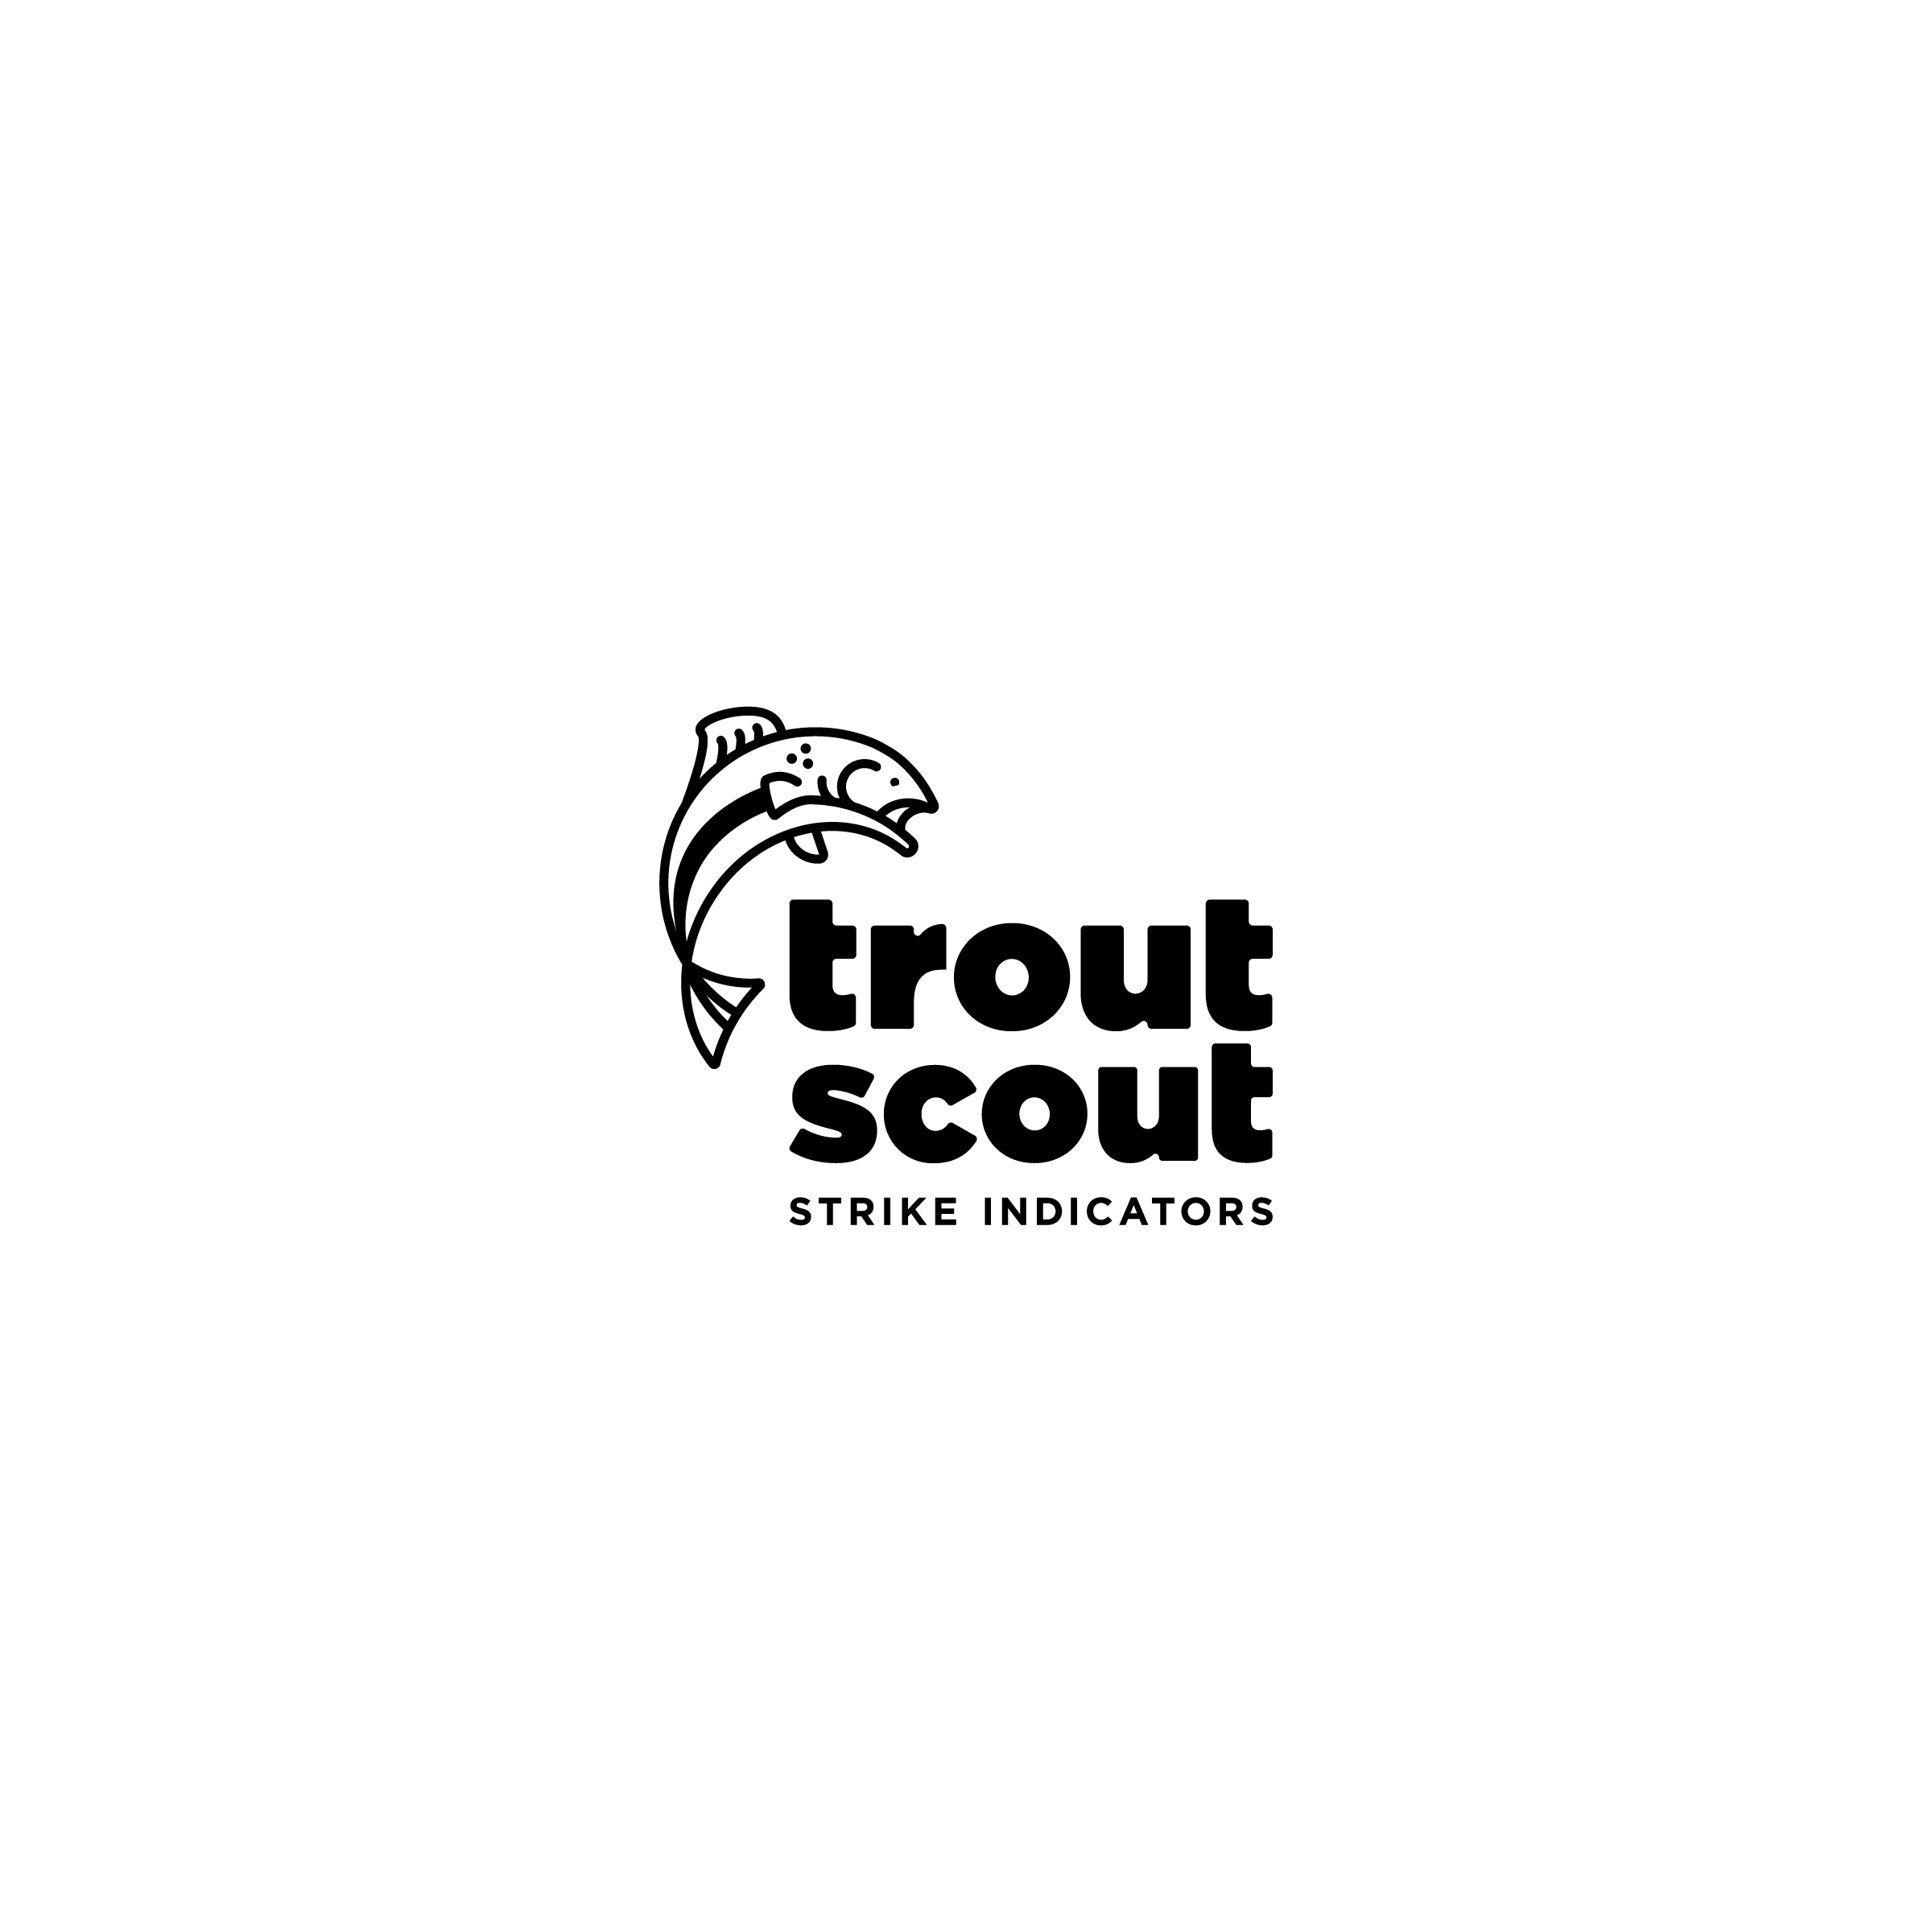 TroutScout_Black_Vrt.jpg